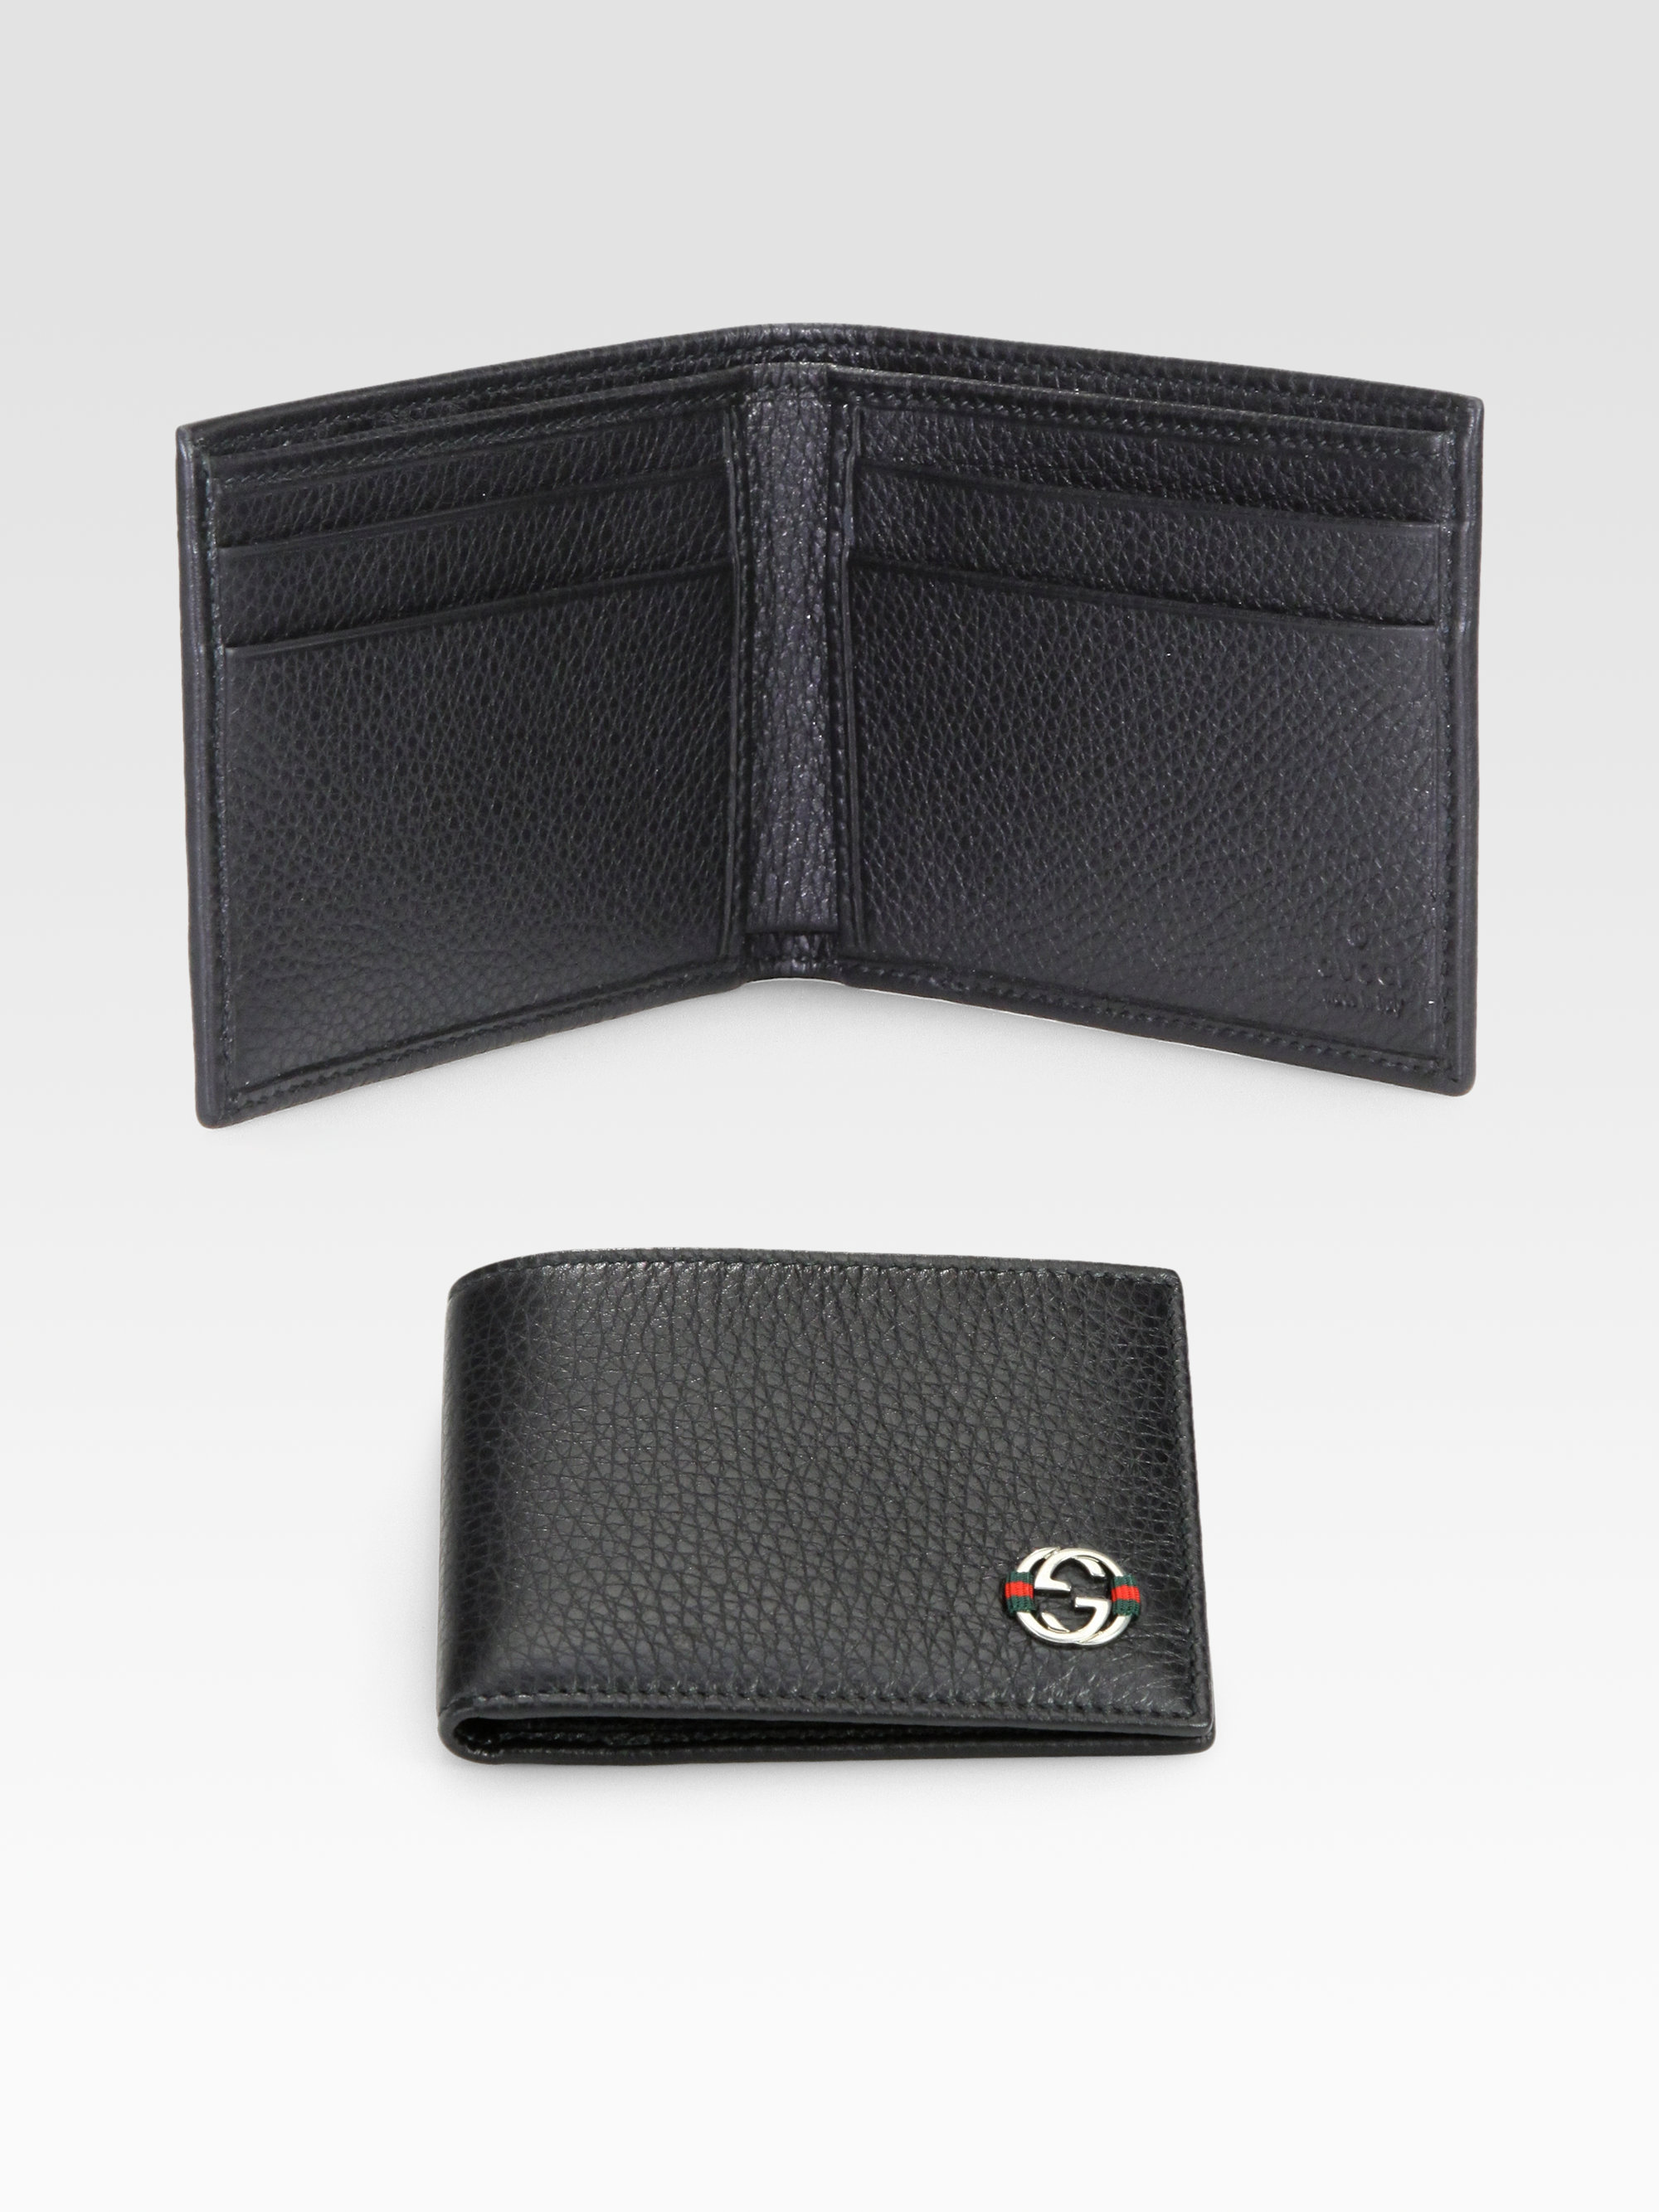 3e31e7b2602a96 Gucci Wallet Prices In Indiana | Stanford Center for Opportunity ...